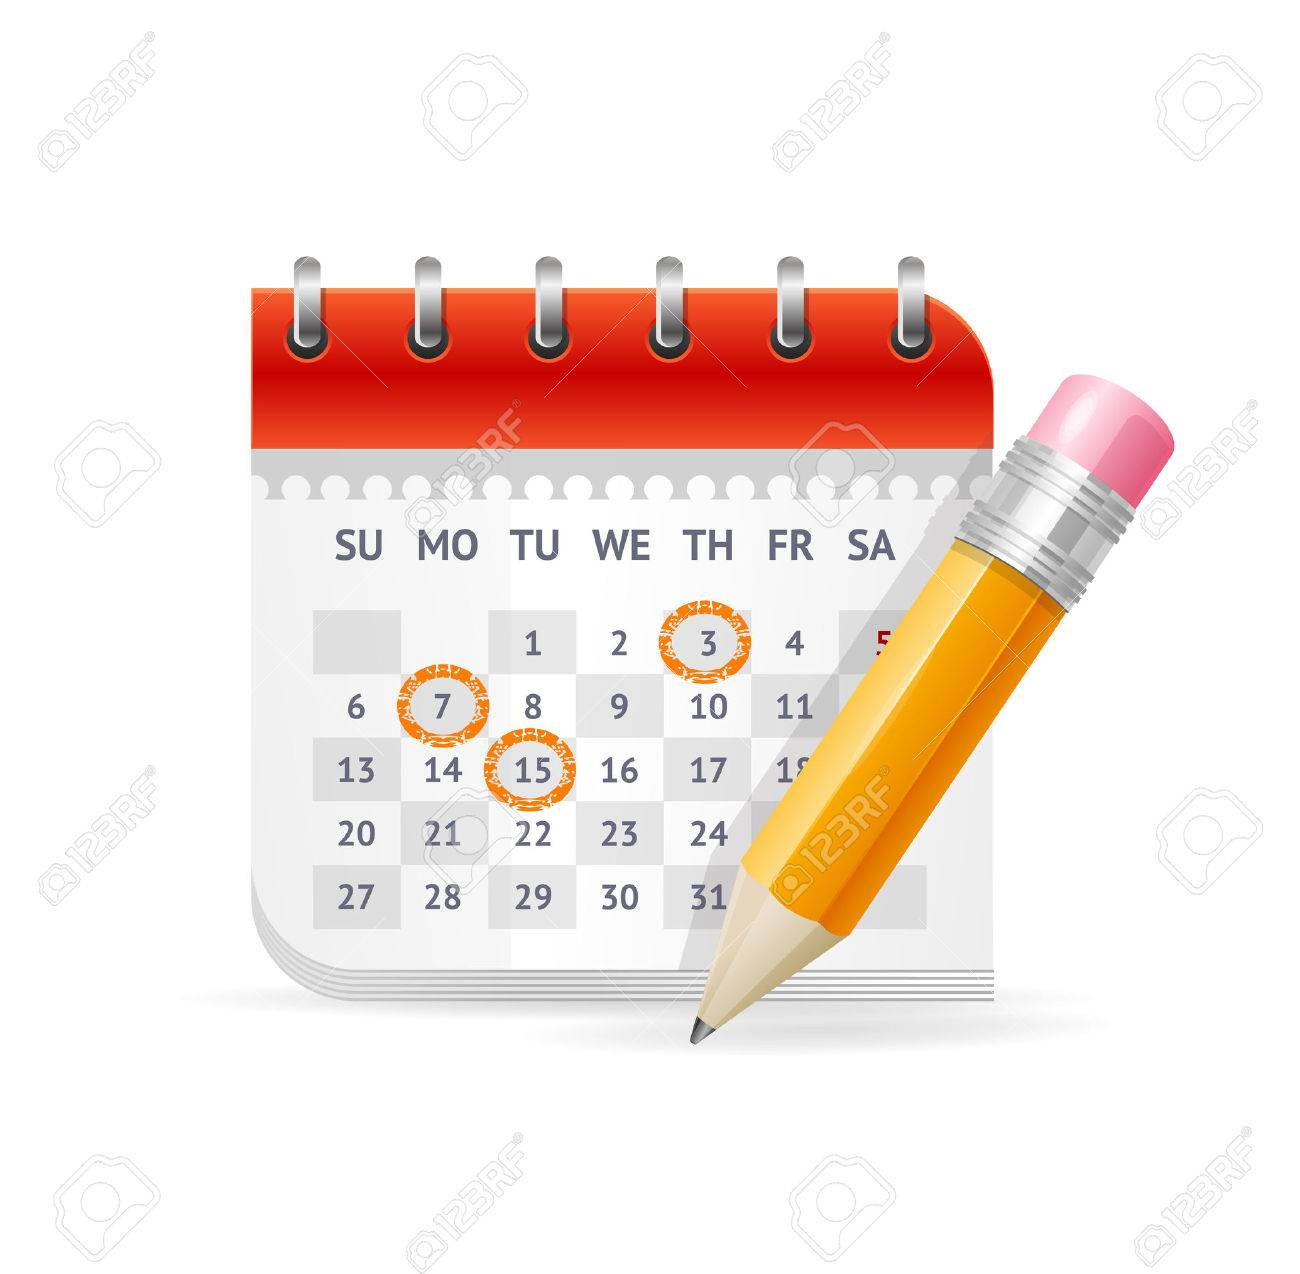 Calendar Business Concept. The Appointment of Important Meetings. Vector illustration - 44432115